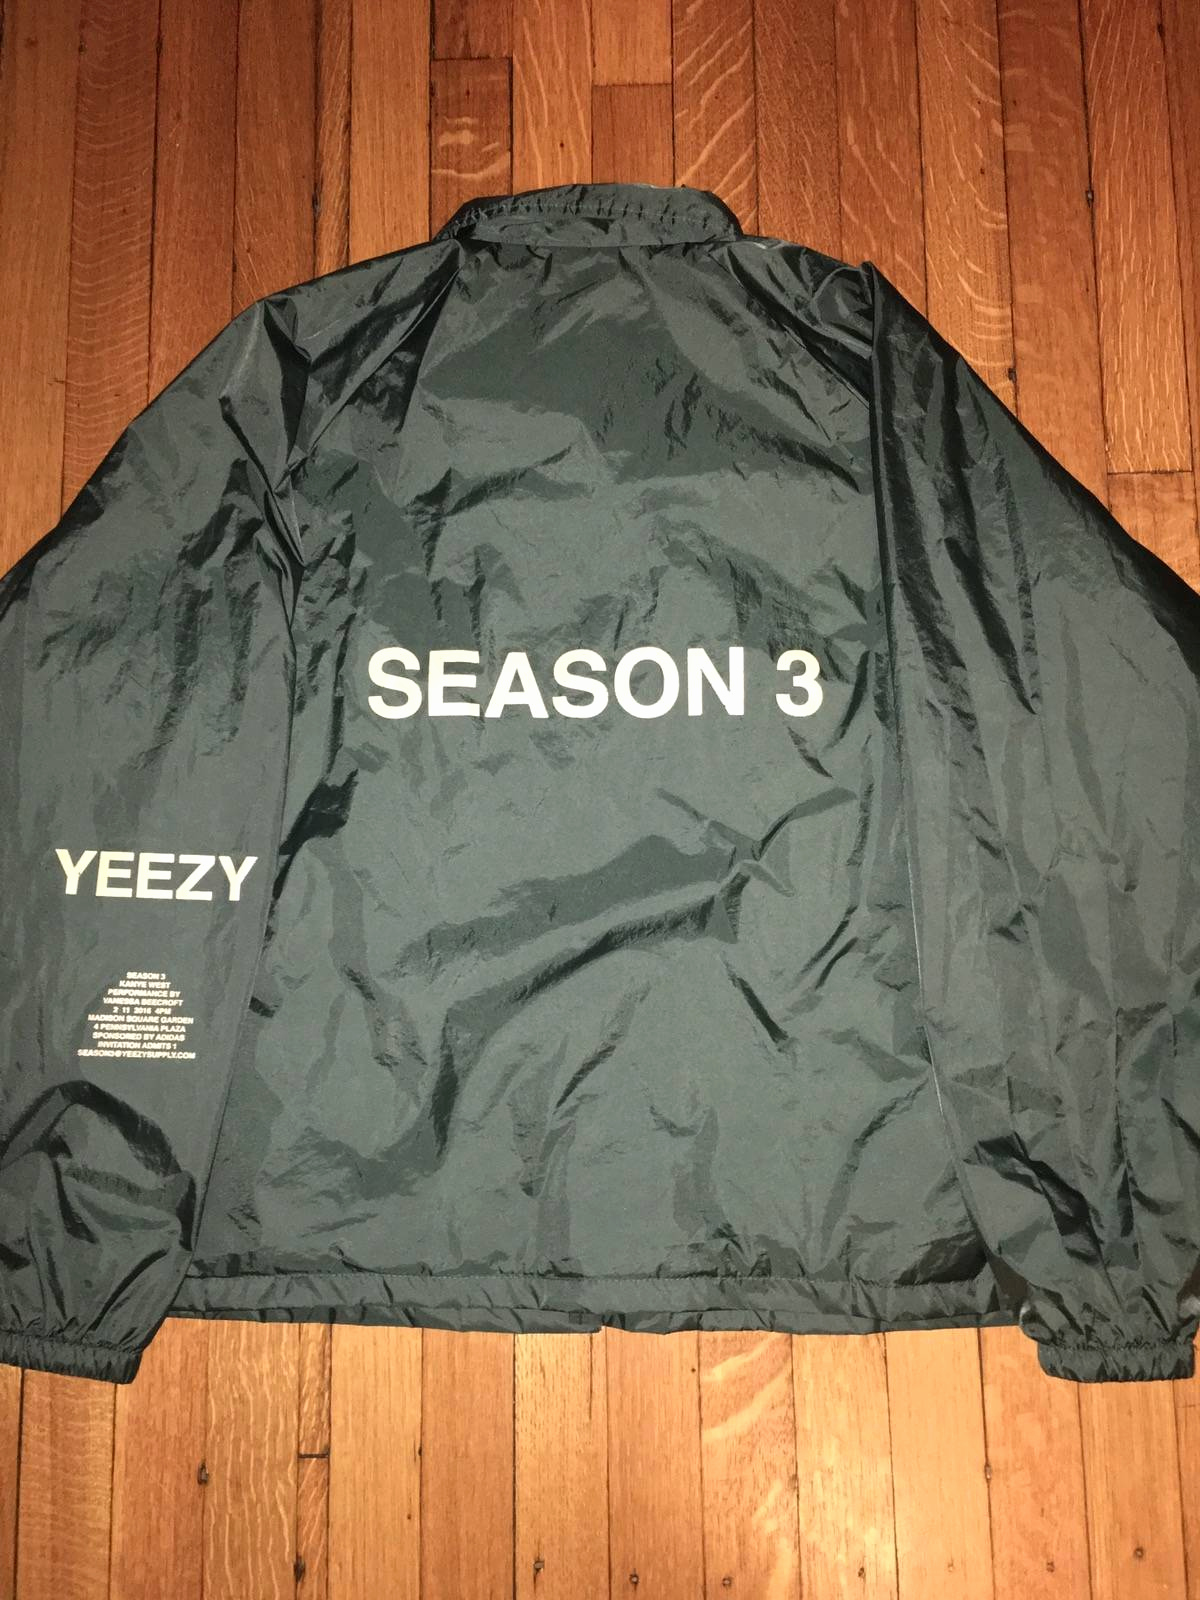 Yeezy Invitation 3 Windbreaker New Yeezy Season Season 3 Invitation Coaches Jacket